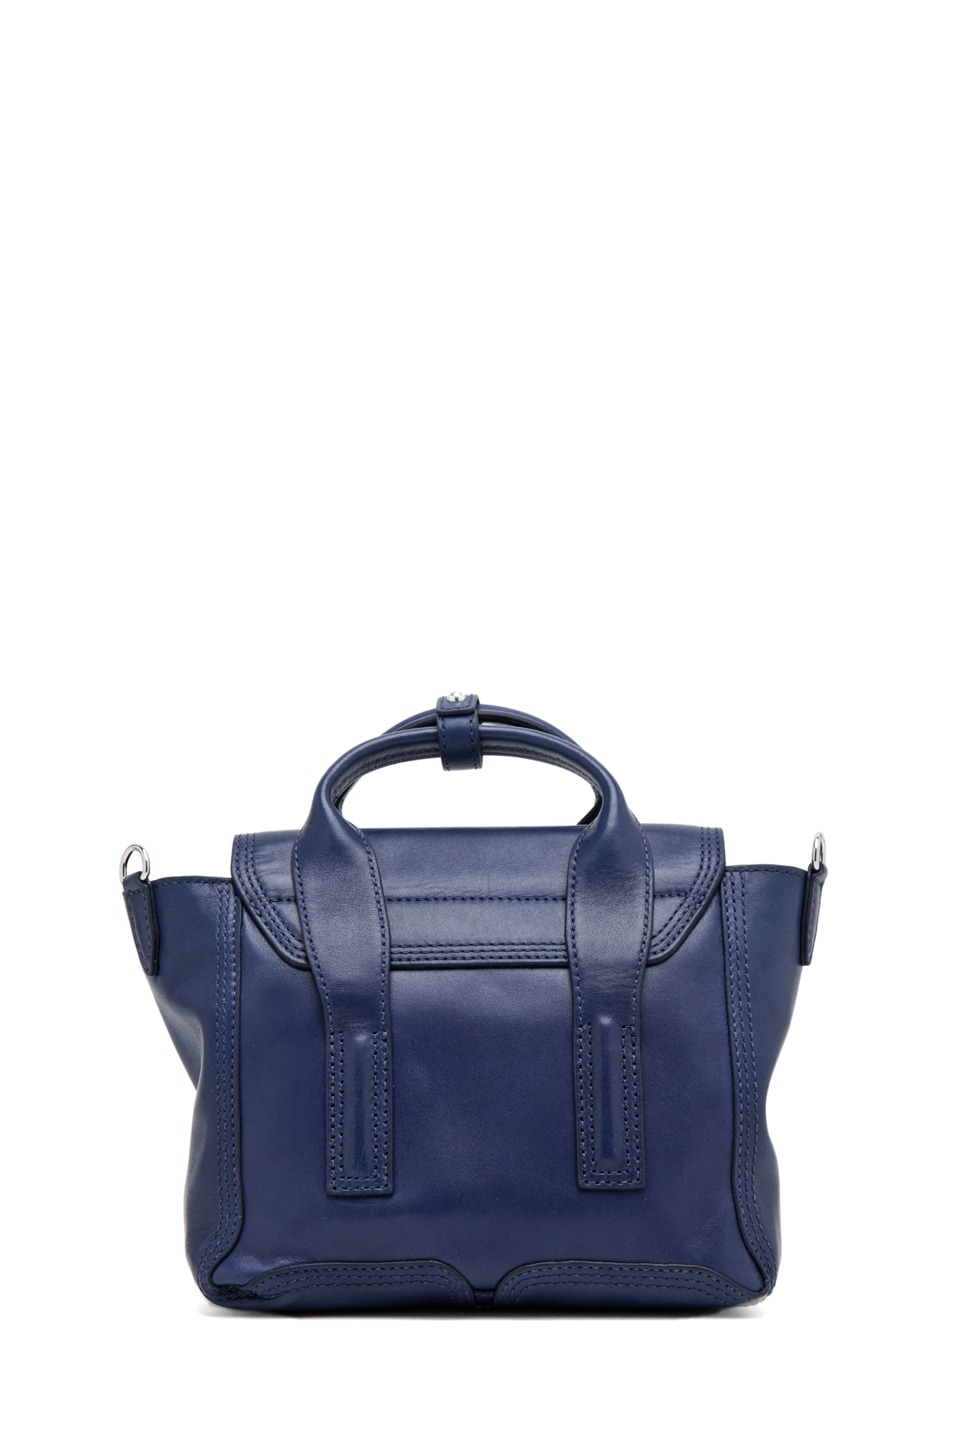 Image 2 of 3.1 phillip lim Pashli Mini Satchel in Navy